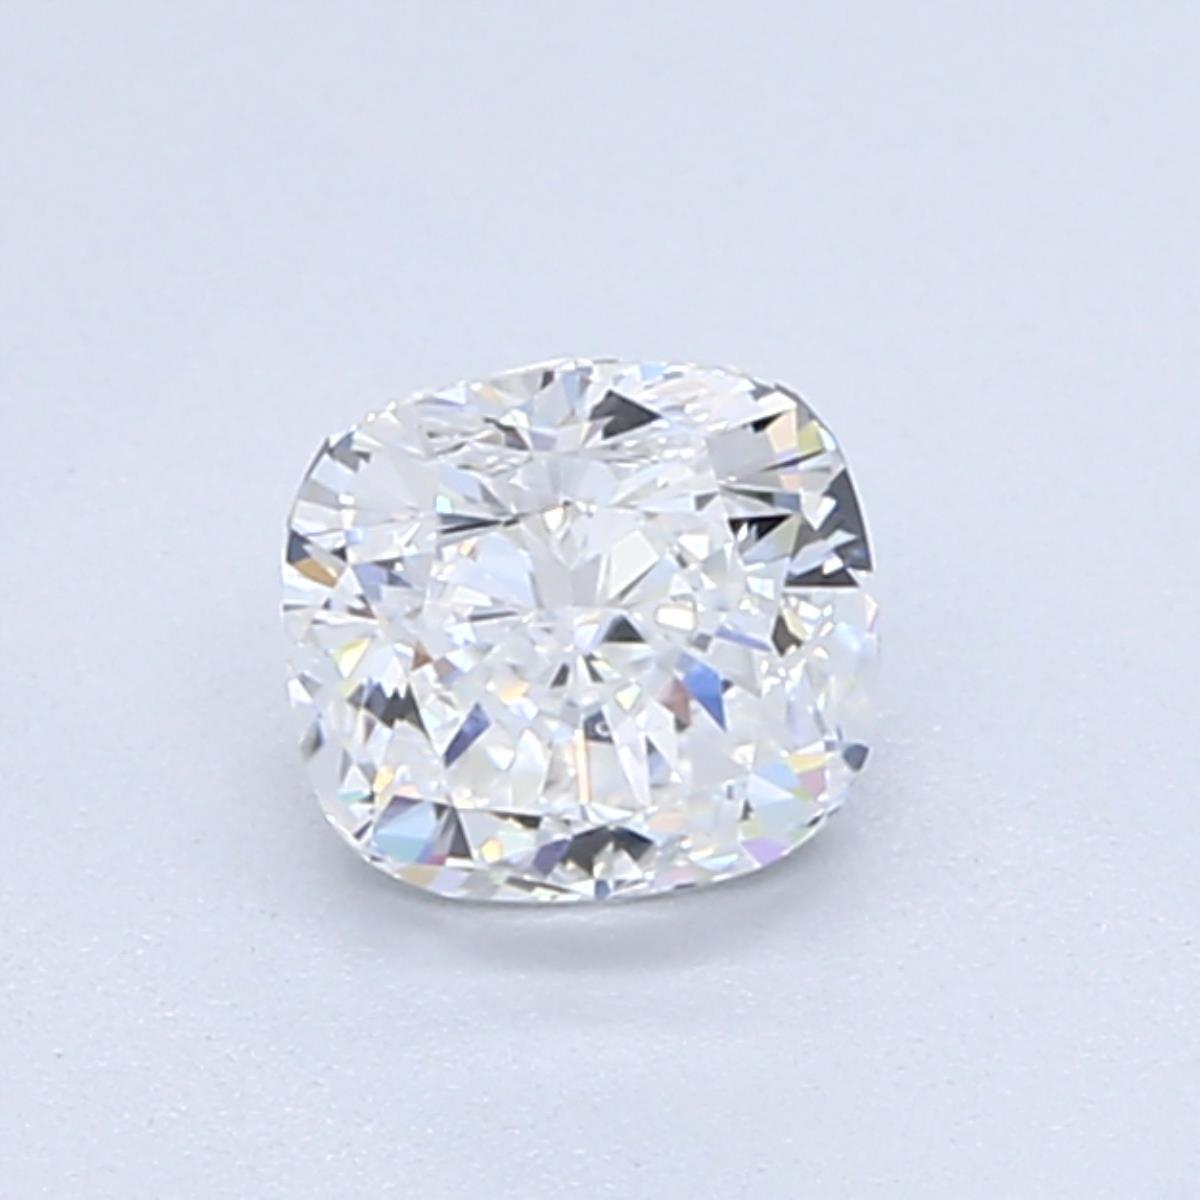 .84 carat Cushion Diamond, Very Good cut, graded by the GIA laboratories.